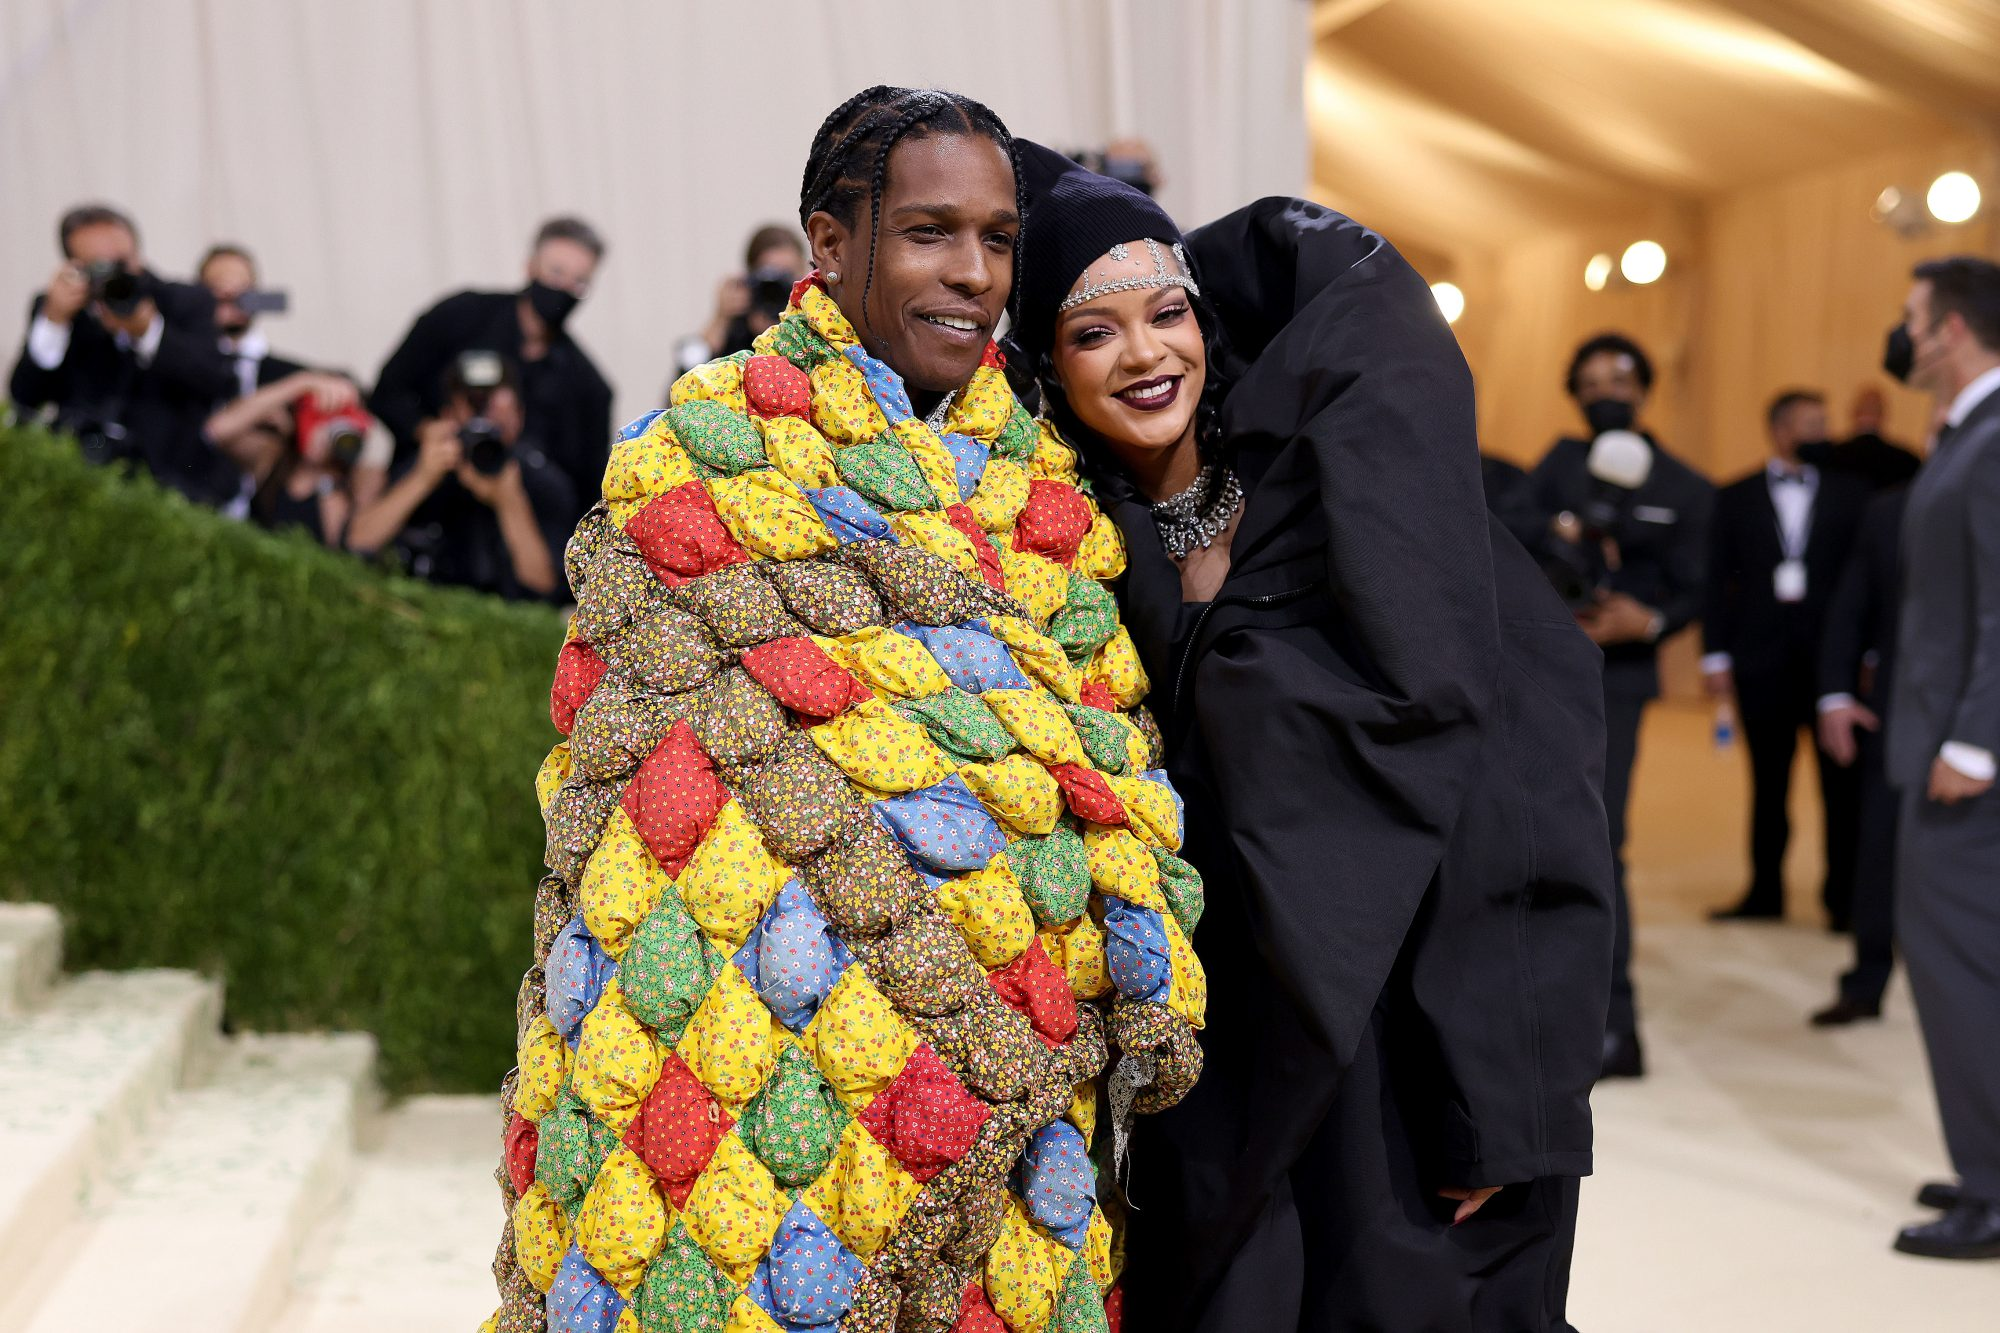 Rihanna & A$AP Rocky Celebrate Their Red Carpet Debut As A Couple At The Met Gala in New York